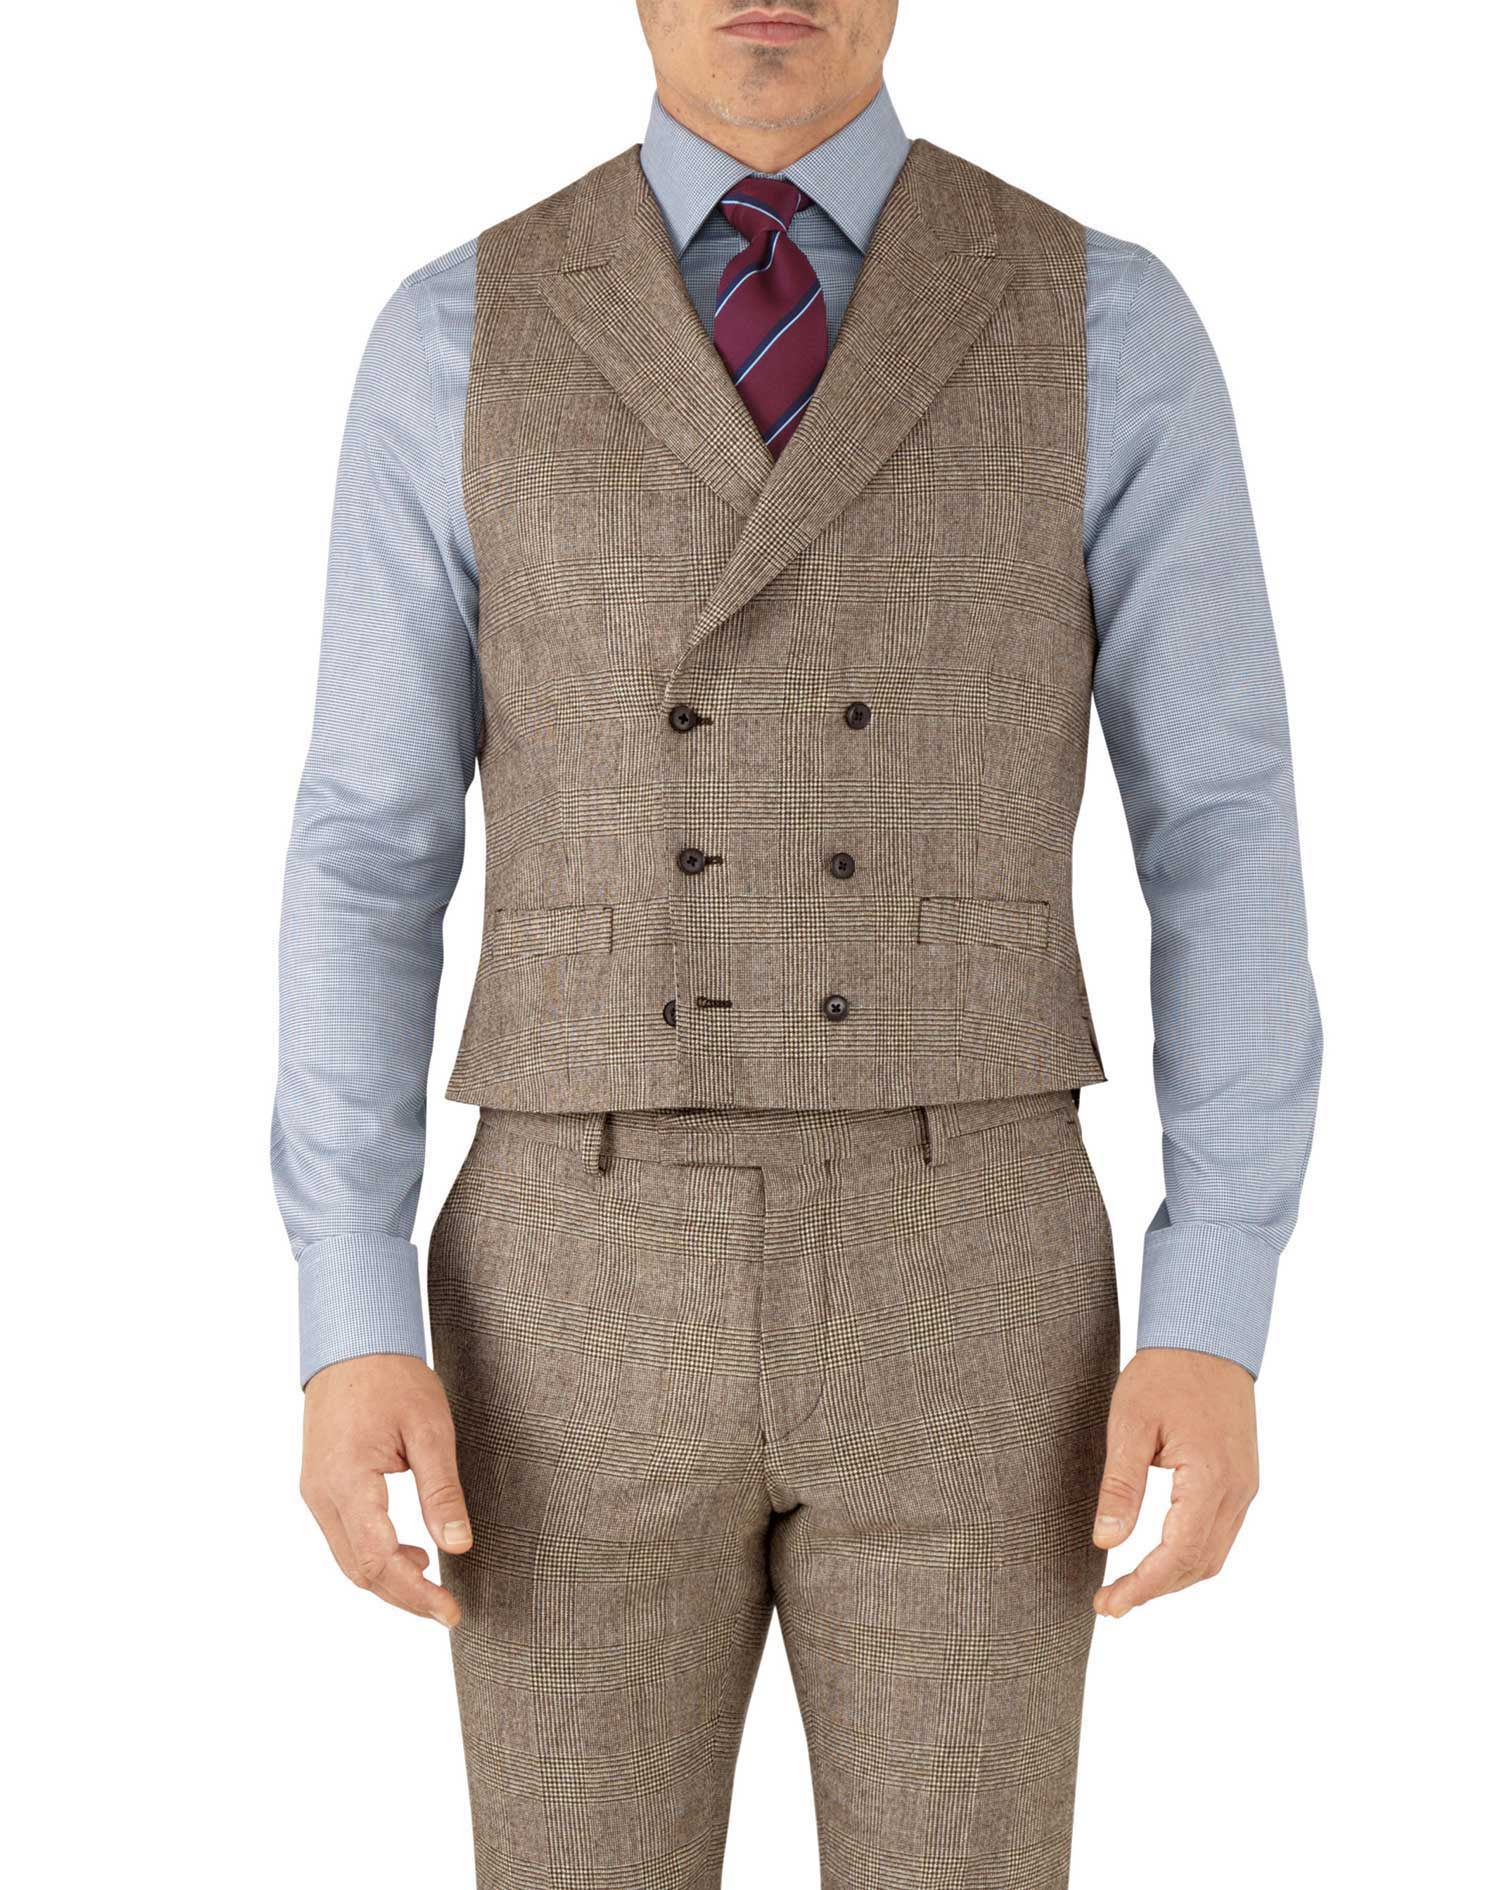 Tan check adjustable fit British serge luxury suit vest